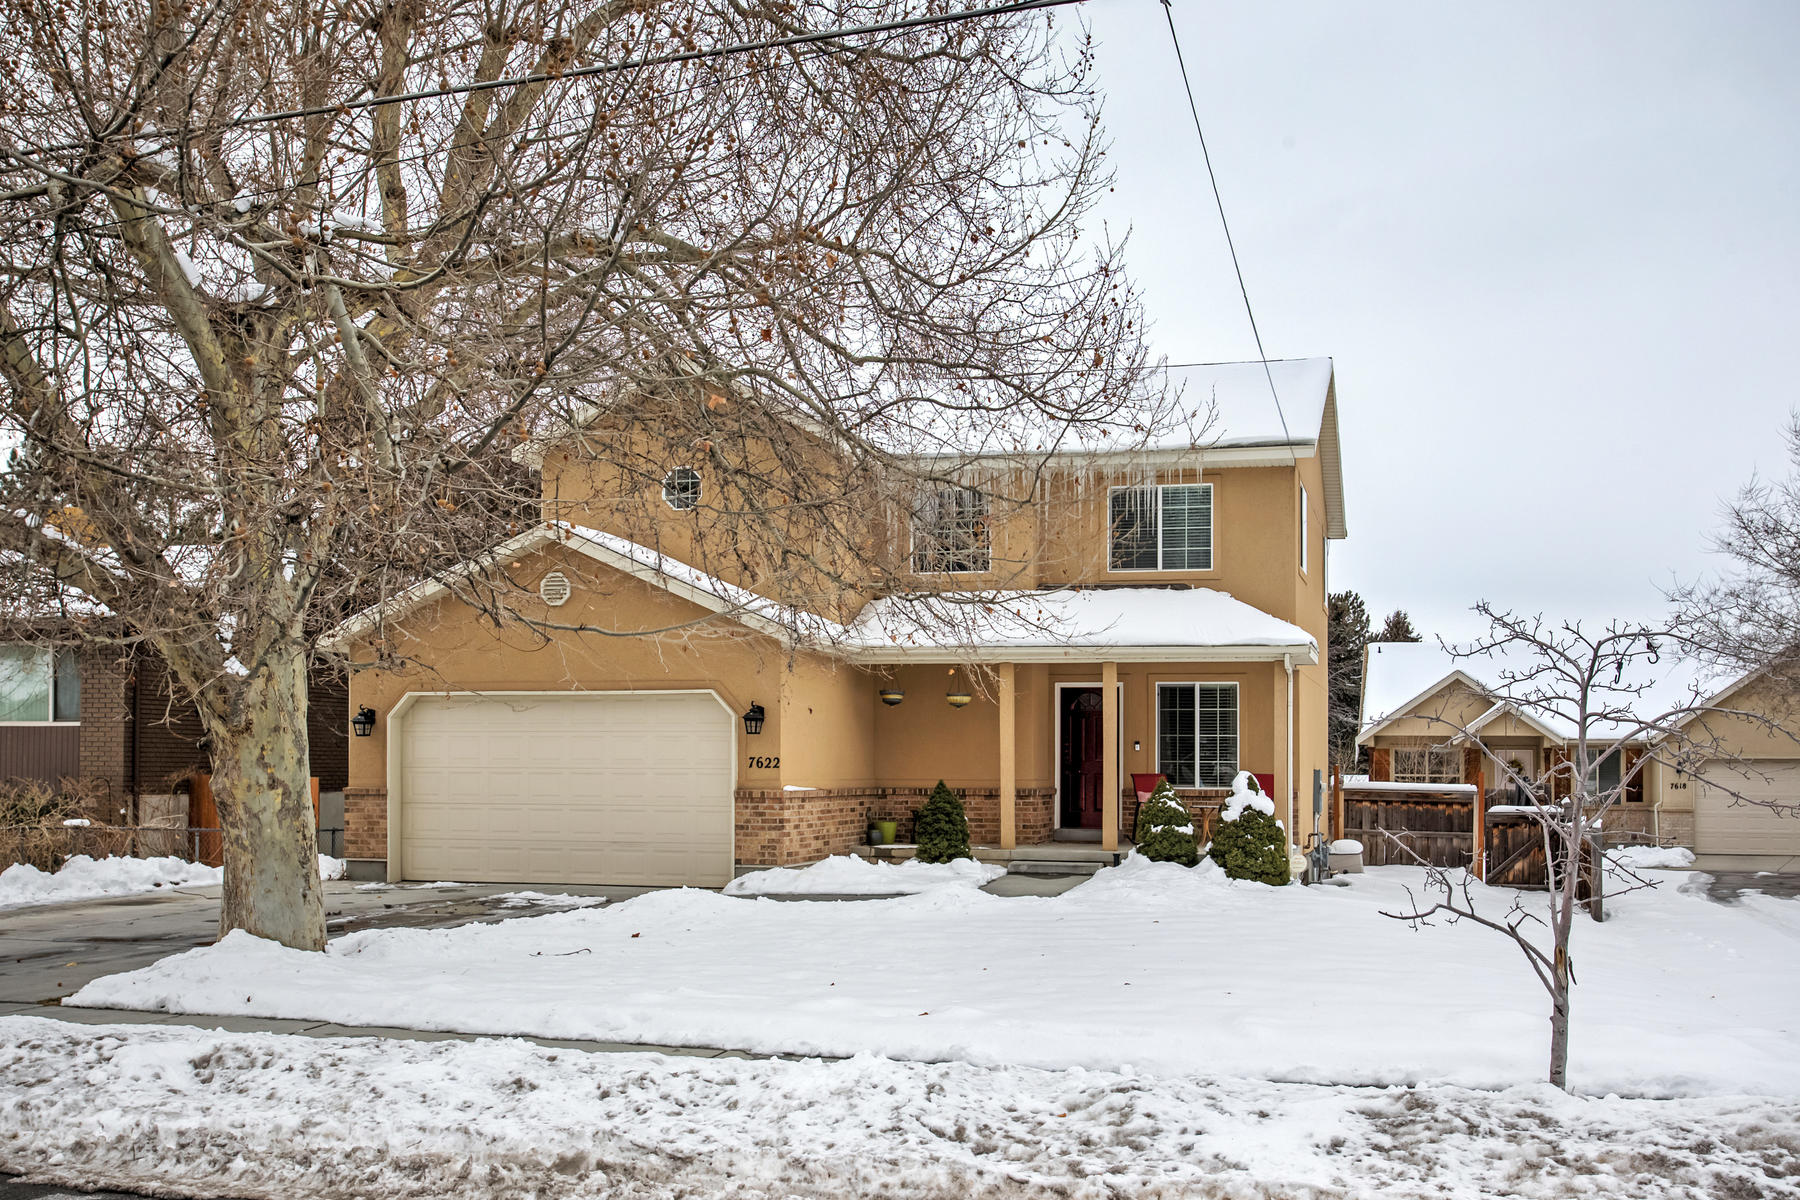 Single Family Home for Sale at Immaculate and Centrally Located Home 7622 South 1000 East Midvale, Utah 84047 United States